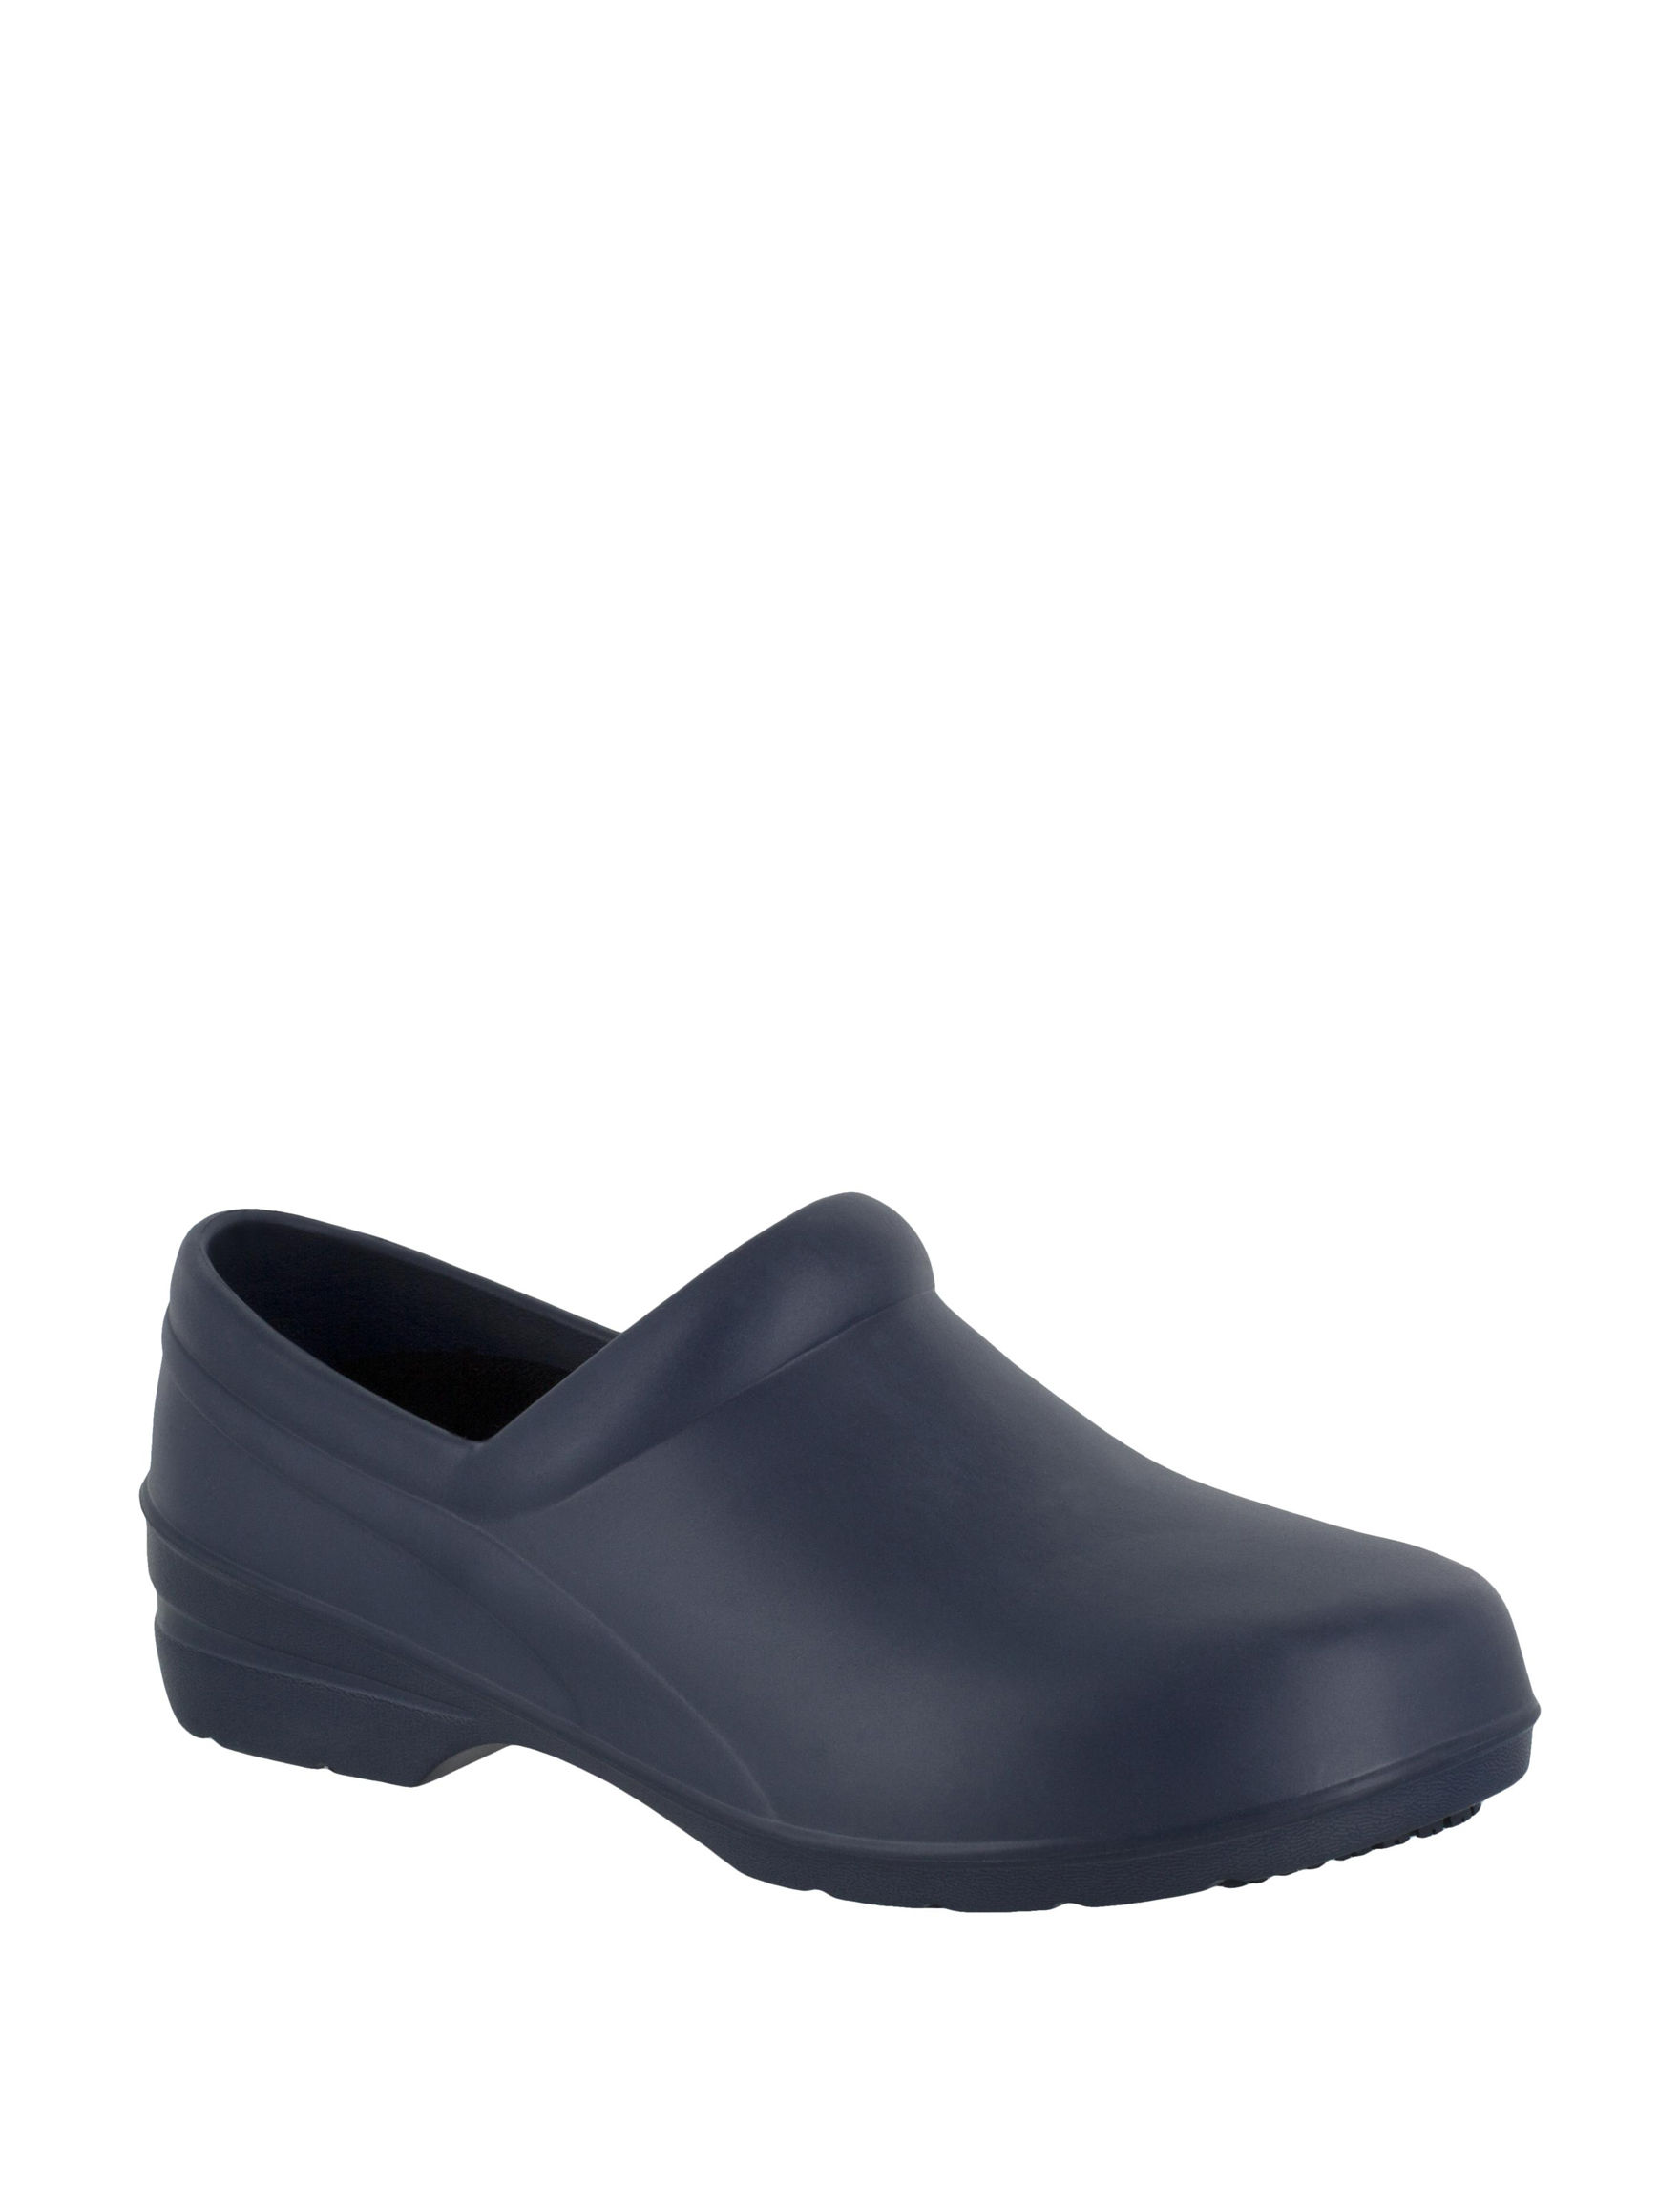 Easy Works by Easy Street Navy Clogs Slip Resistant